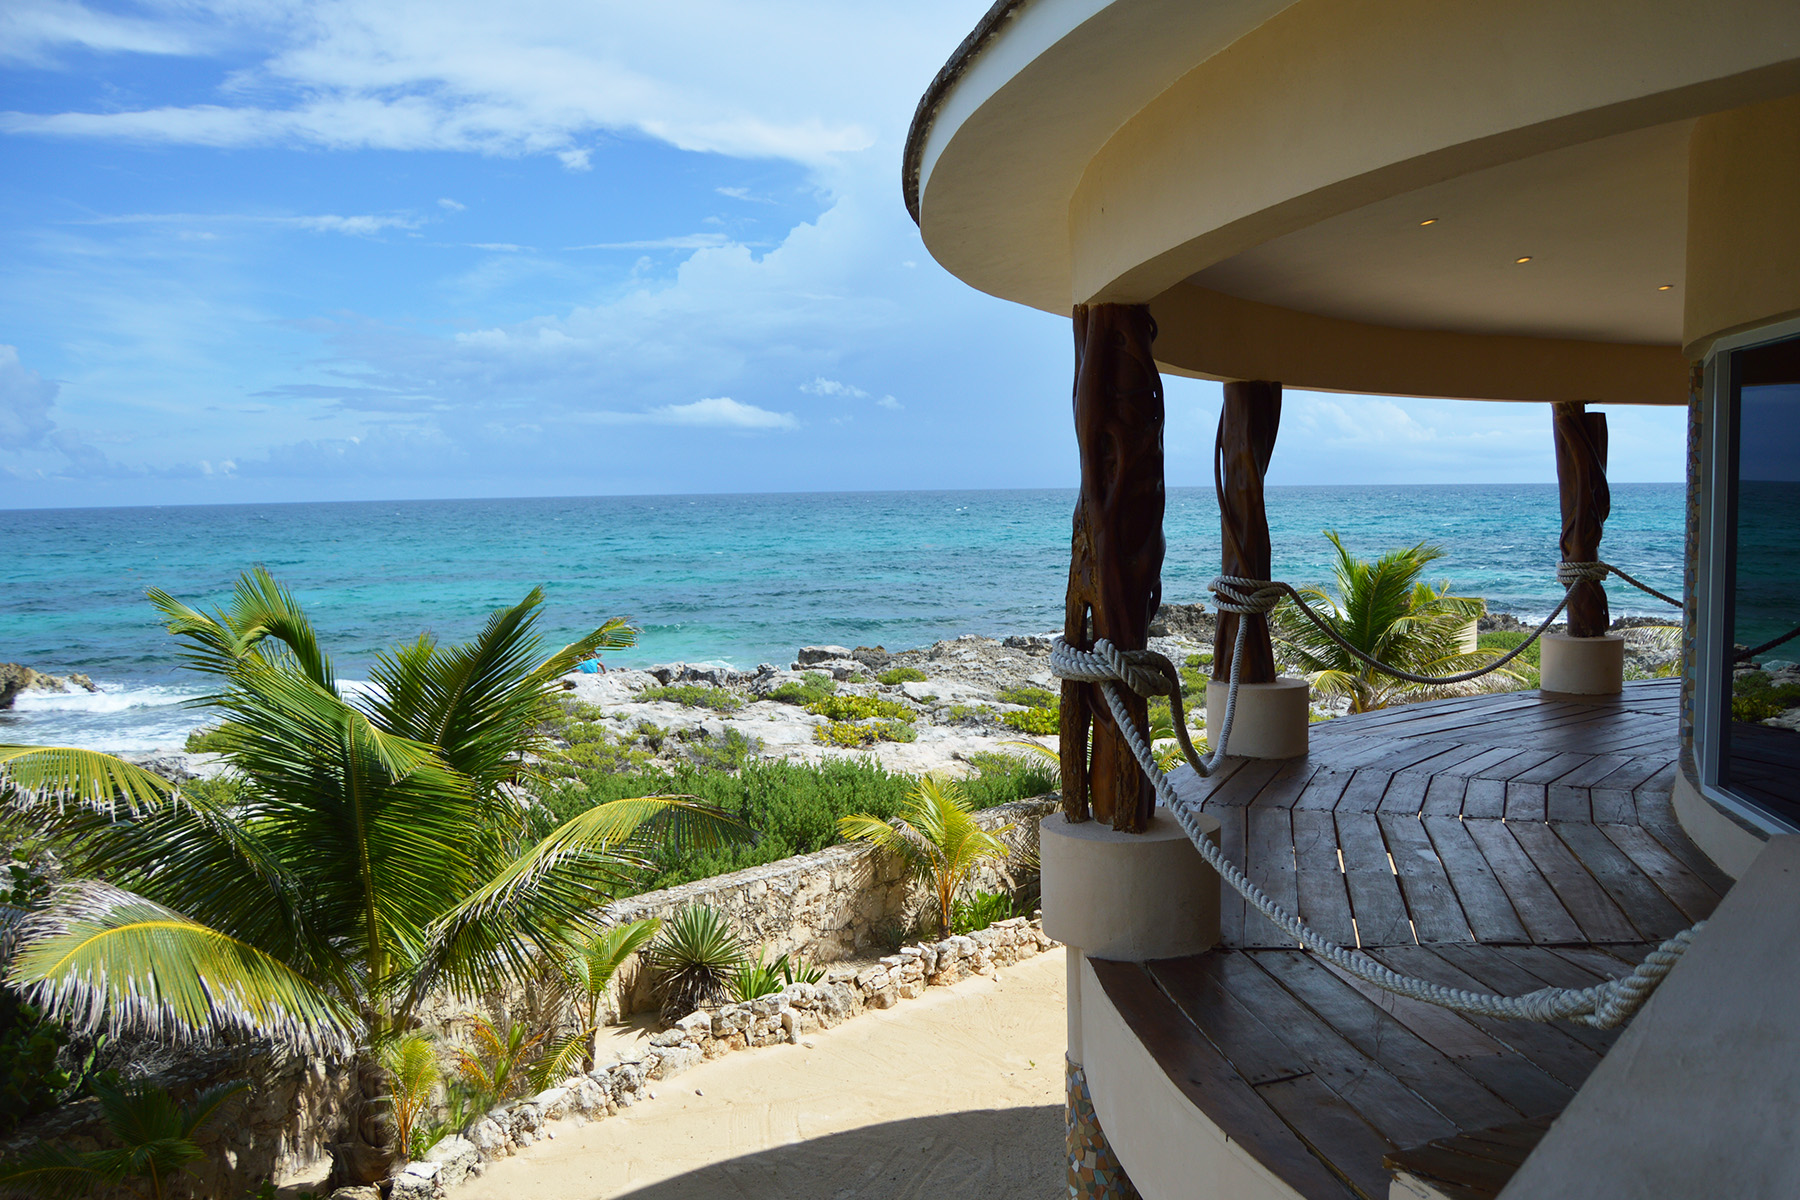 Single Family Home for Sale at SPECTACULAR RESIDENCE IN NORTH BEACH ISLA MUJERES Spectacular Residence in North Beach Punta Norte Isla Mujeres, Quintana Roo 77409 Mexico